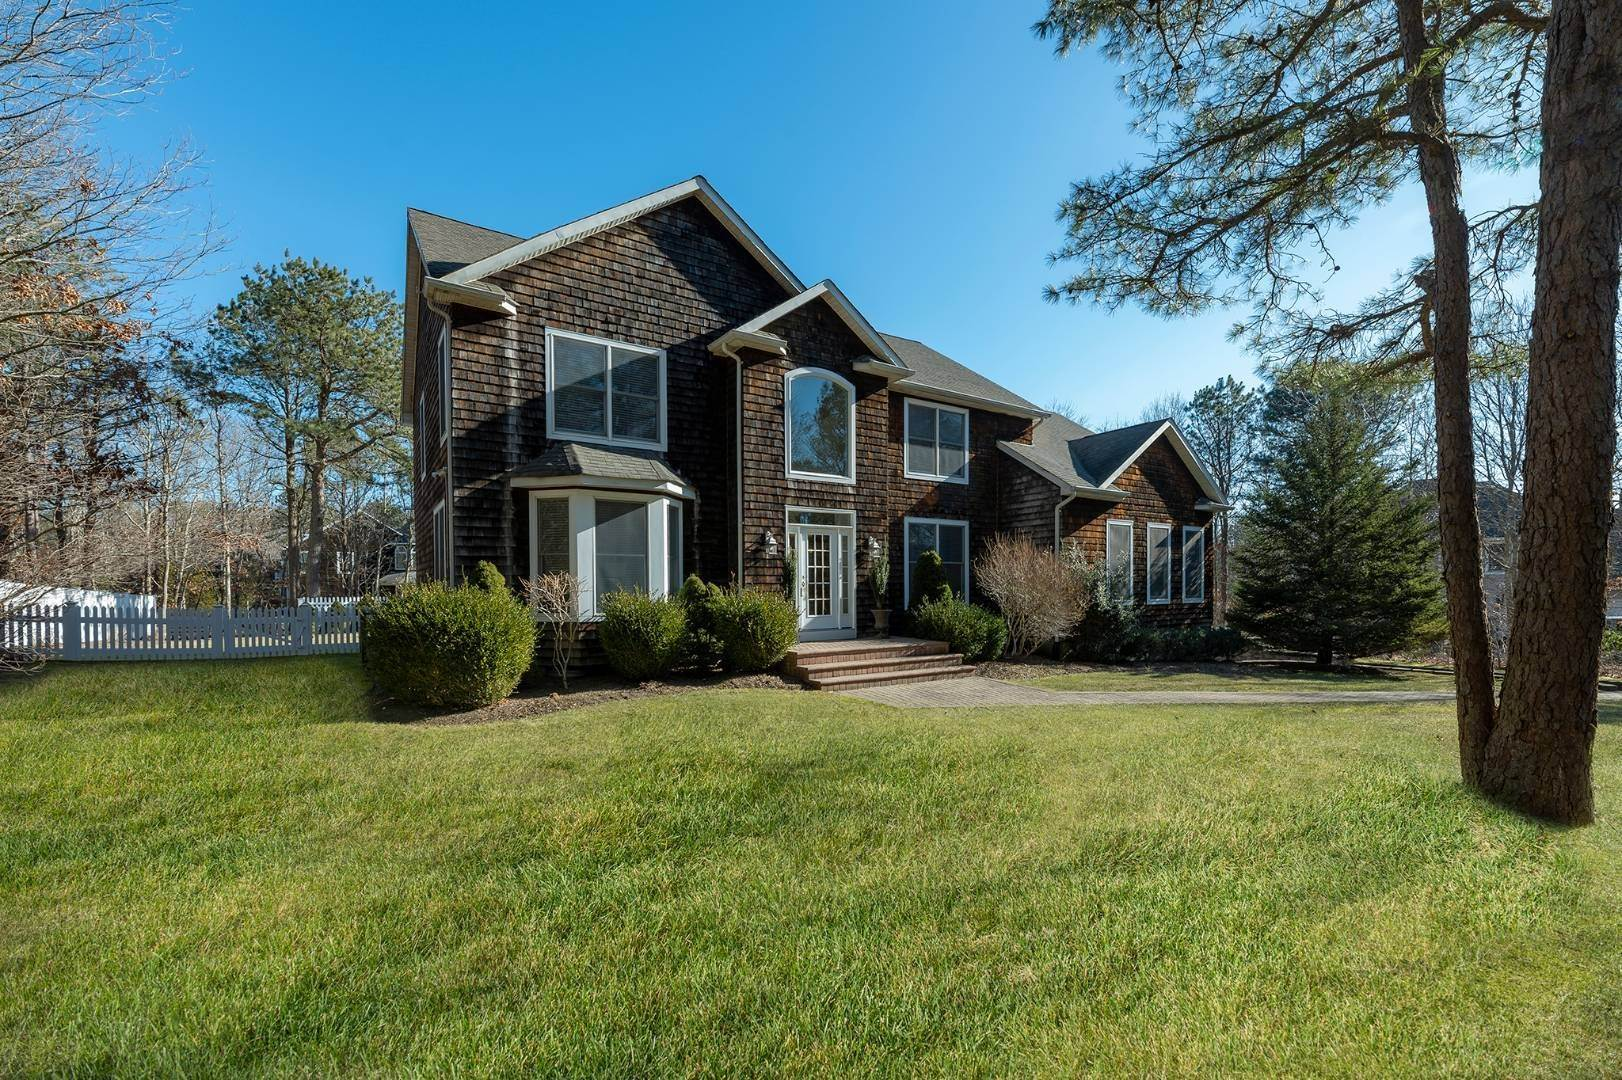 Single Family Home for Sale at East Quogue Postmodern In Prestigious Southampton Pines 103 Corbett Drive, East Quogue, NY 11942